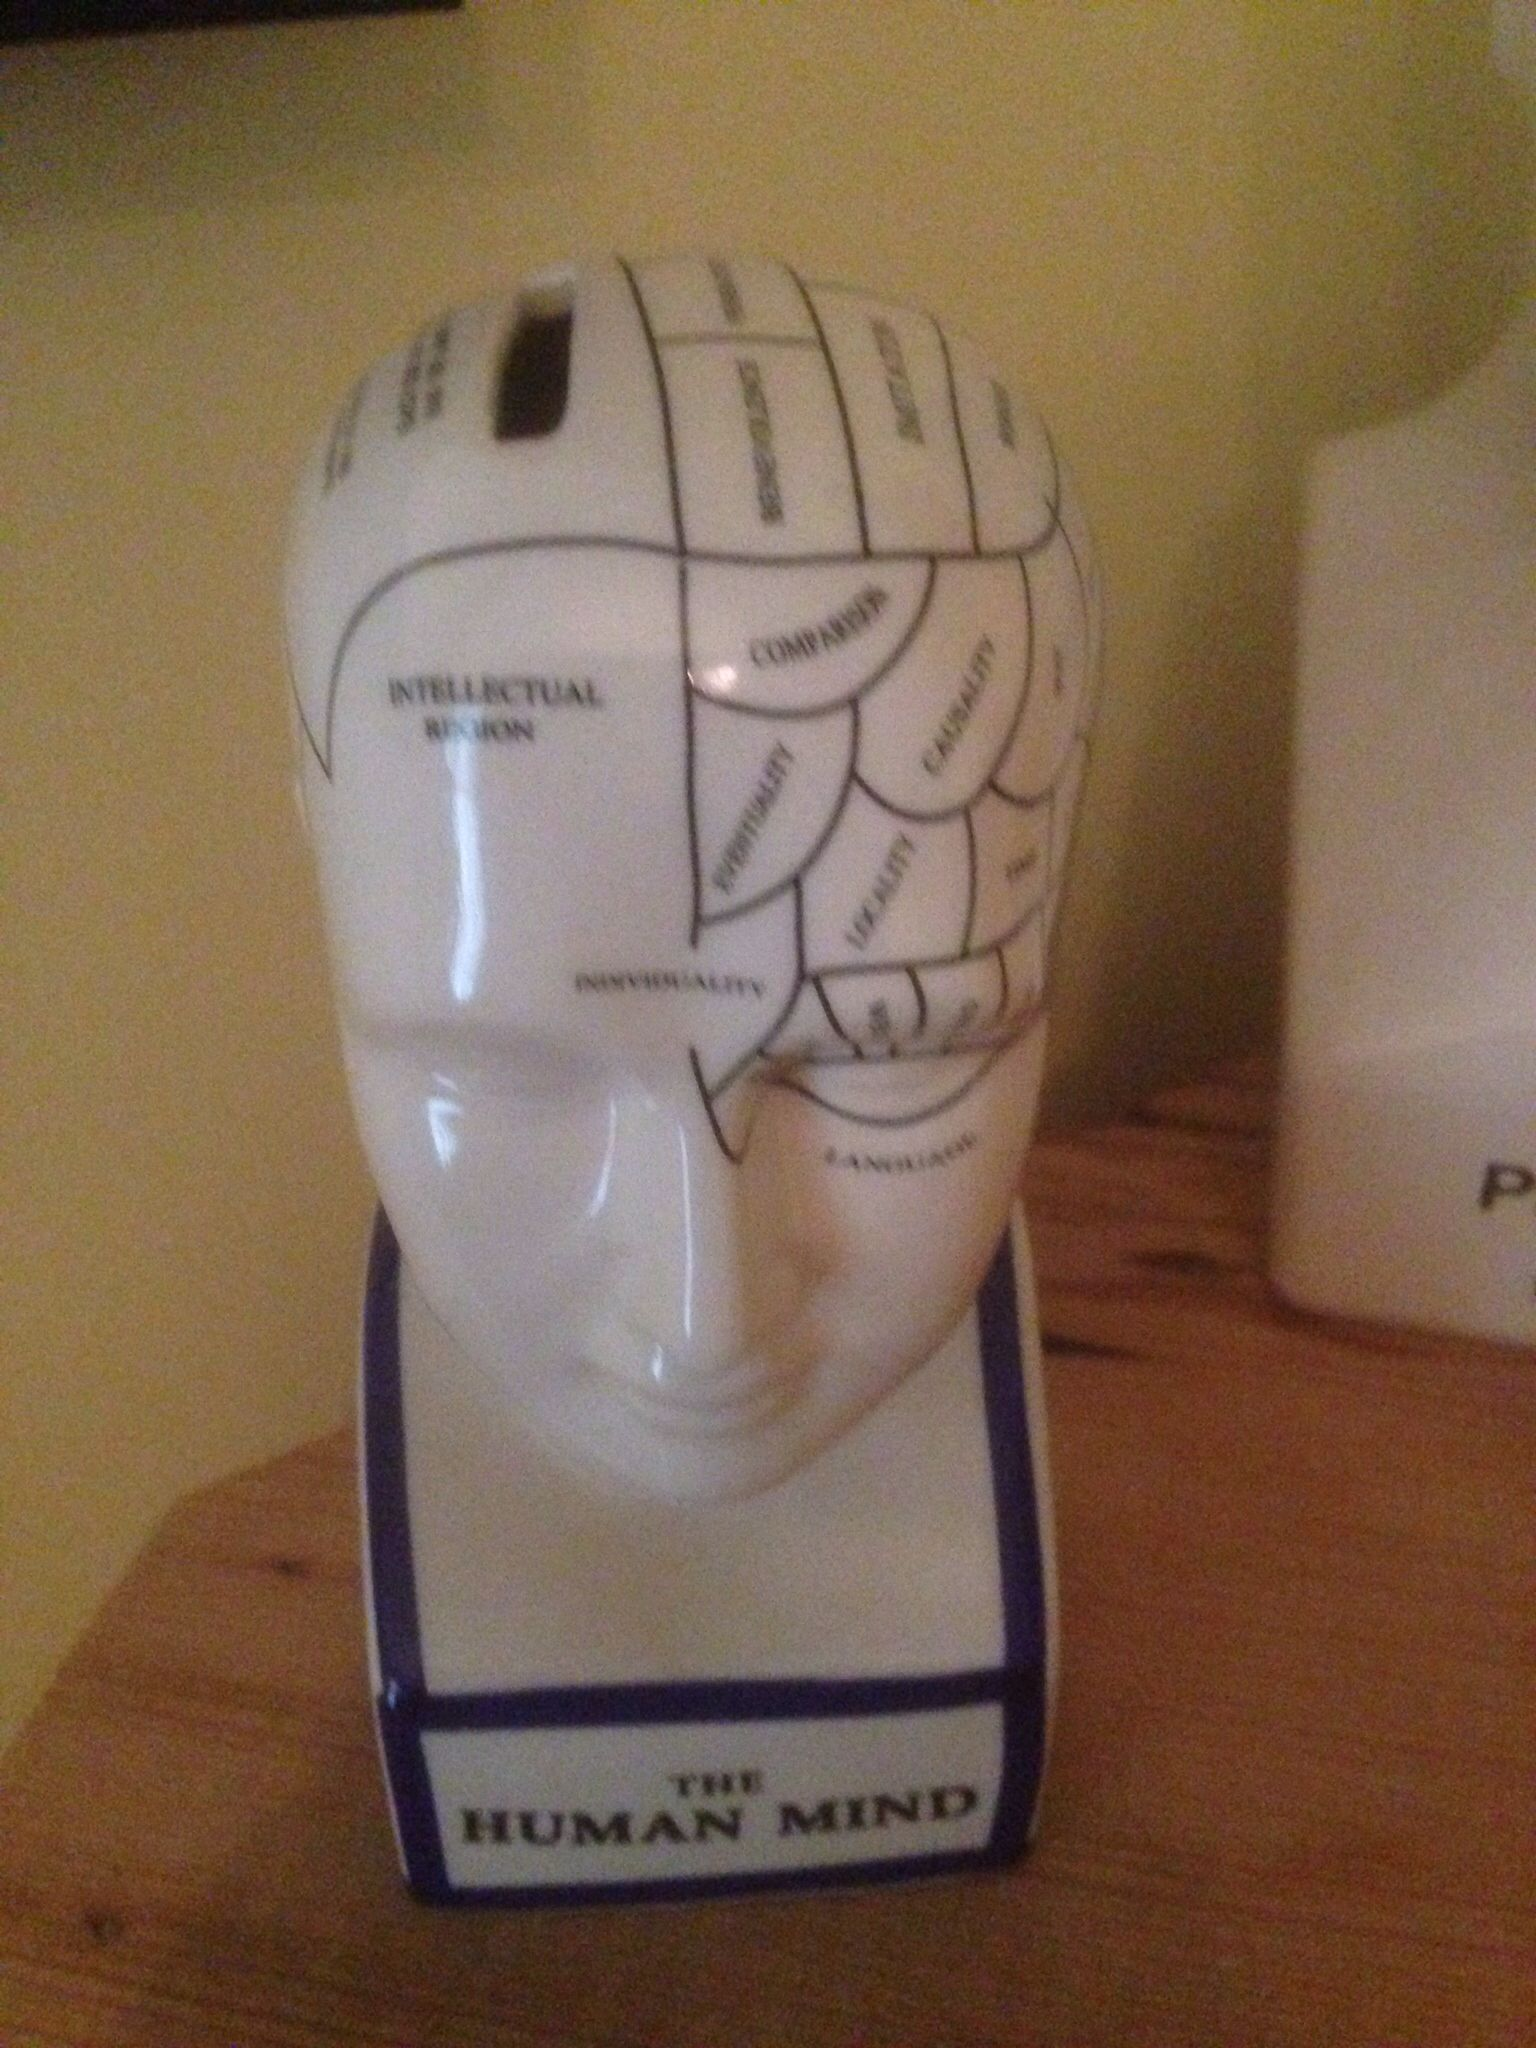 Bank From Home Goods In Grand Rapid Michigan Phrenology Head